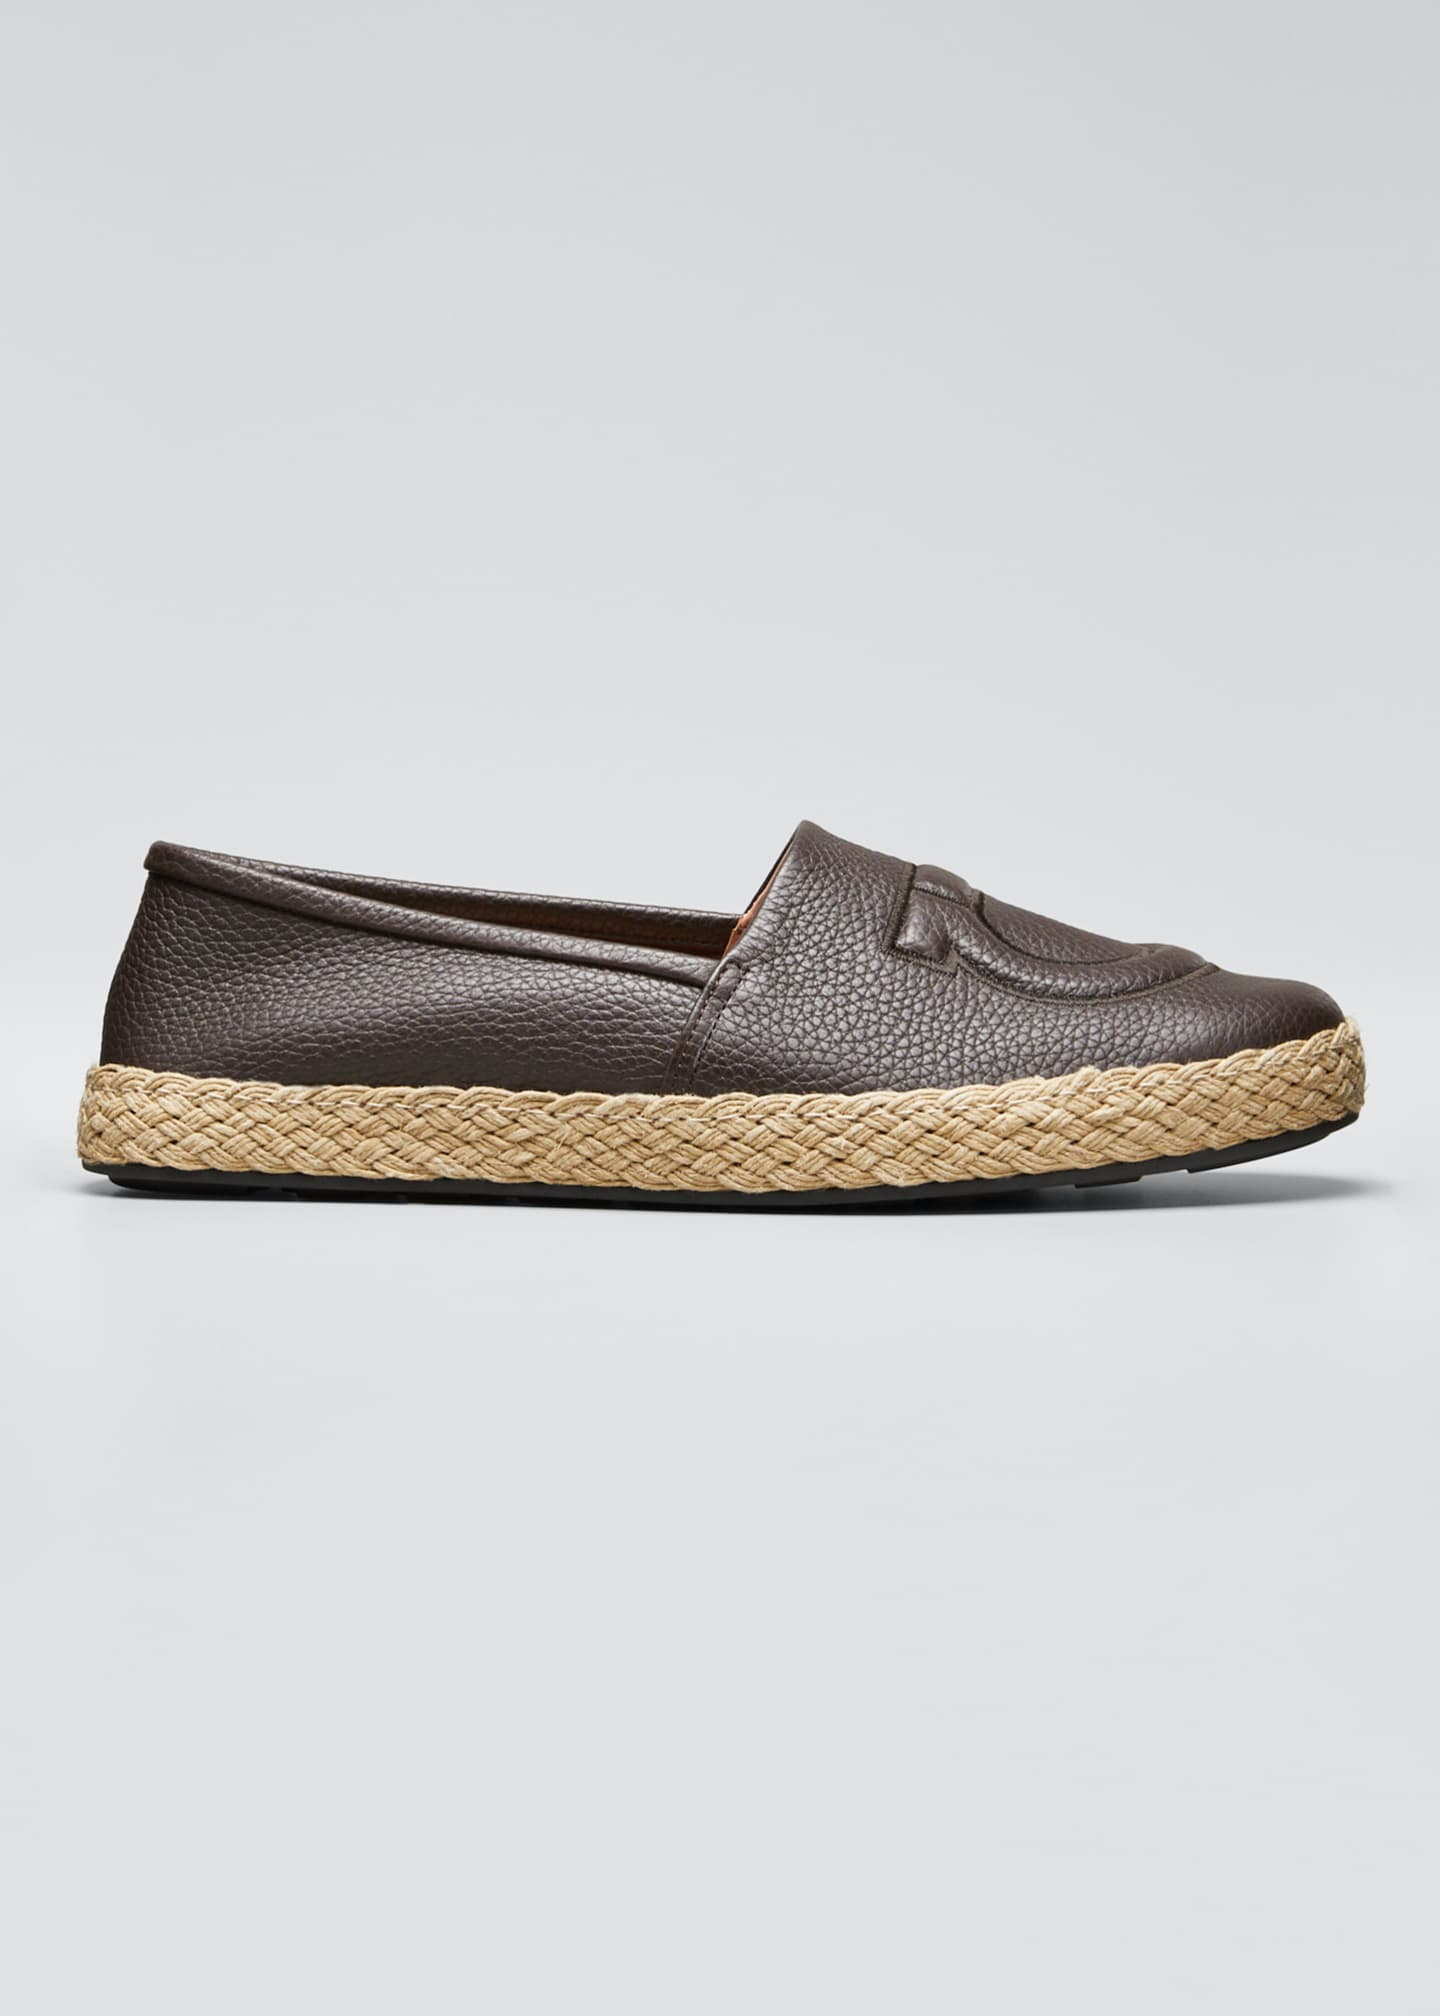 Image 1 of 5: Men's Summer Gancio Leather Espadrilles